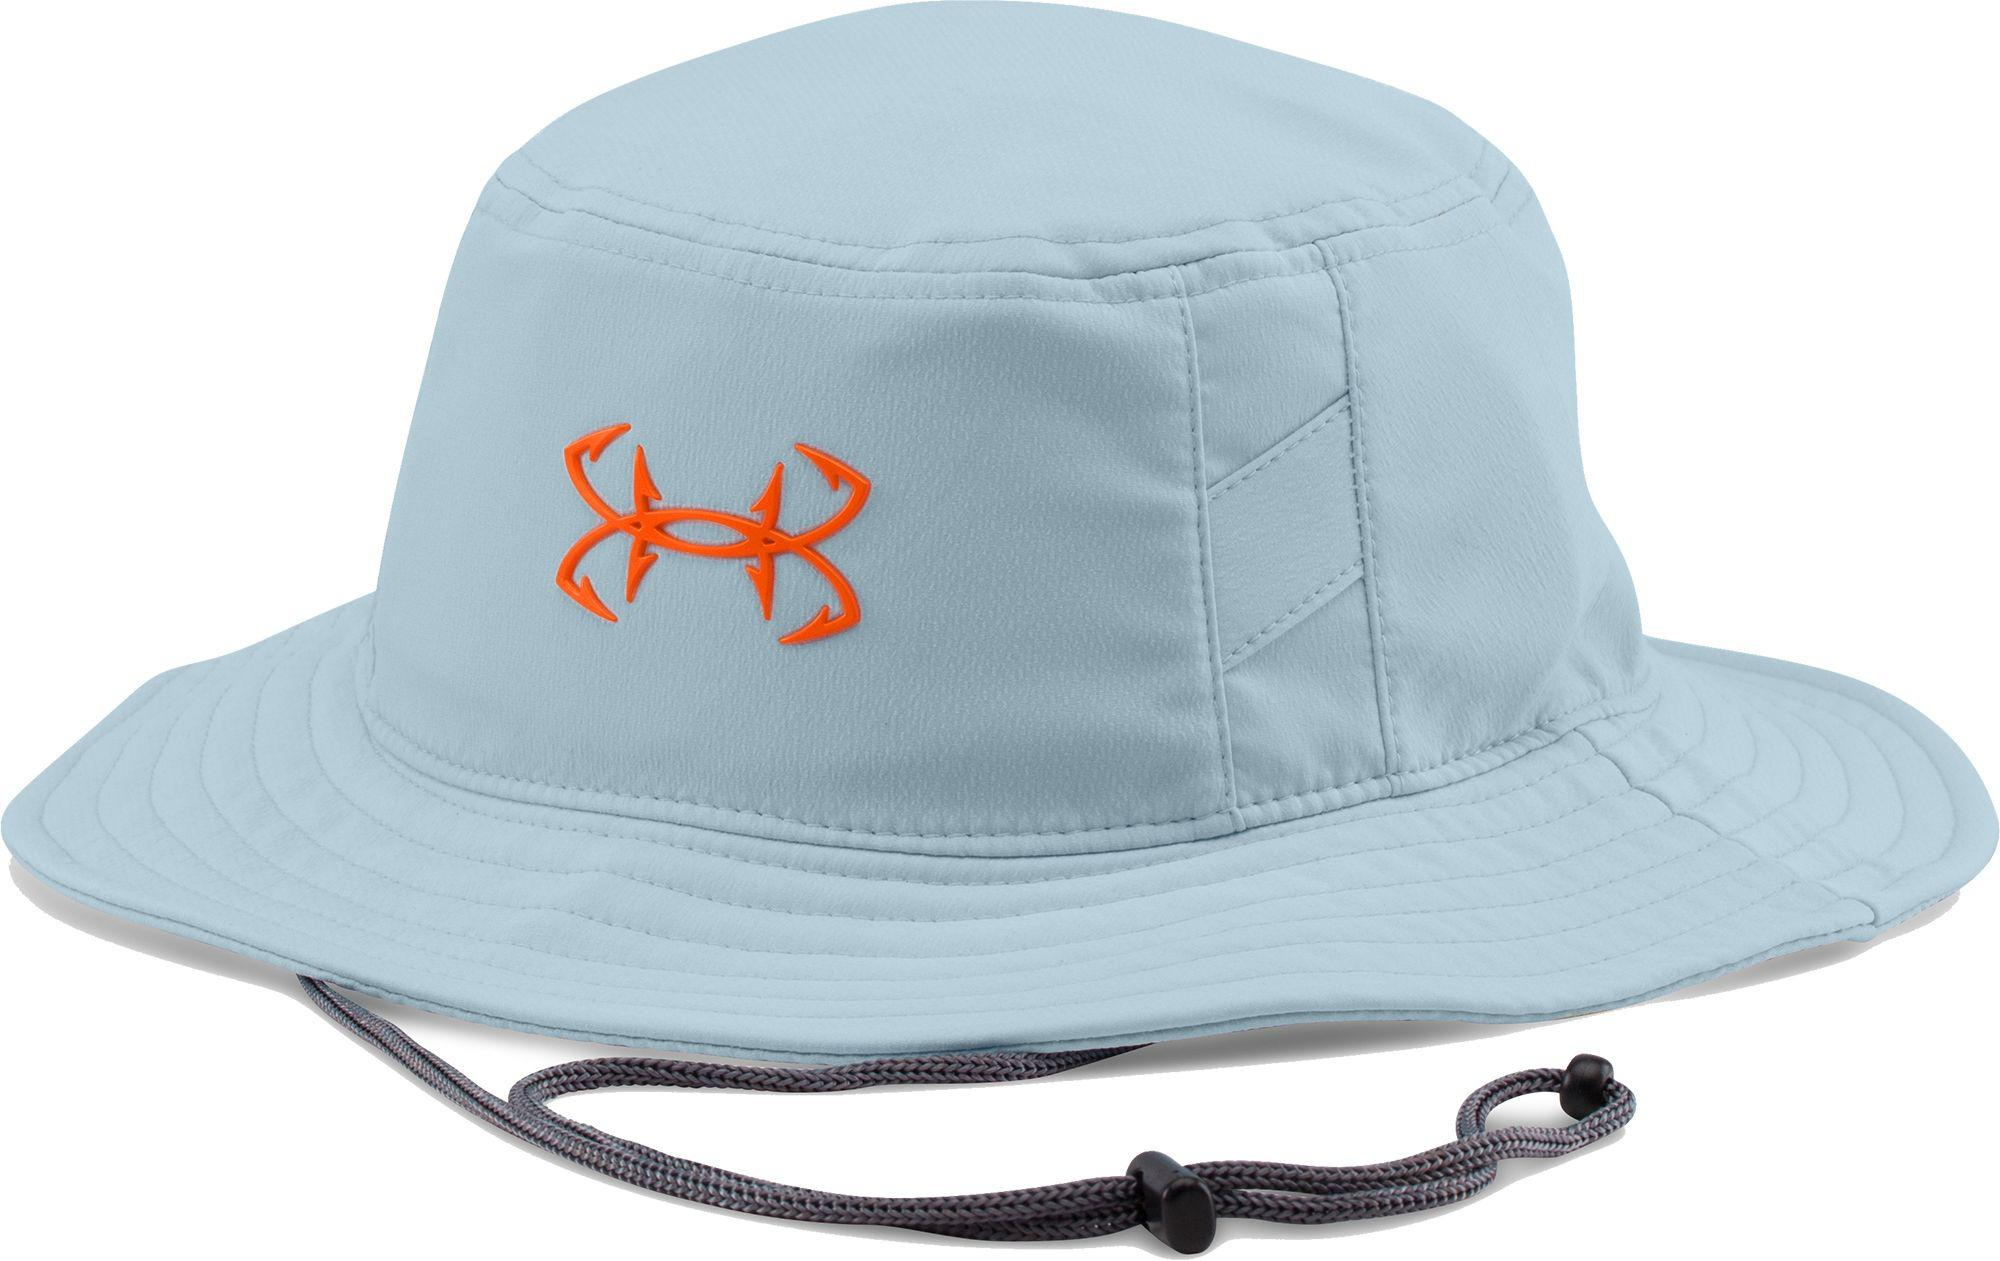 62930d7b4a972 ... australia under armour fish hook hat canada images lobster and 6c58d  c66a9 discount ...